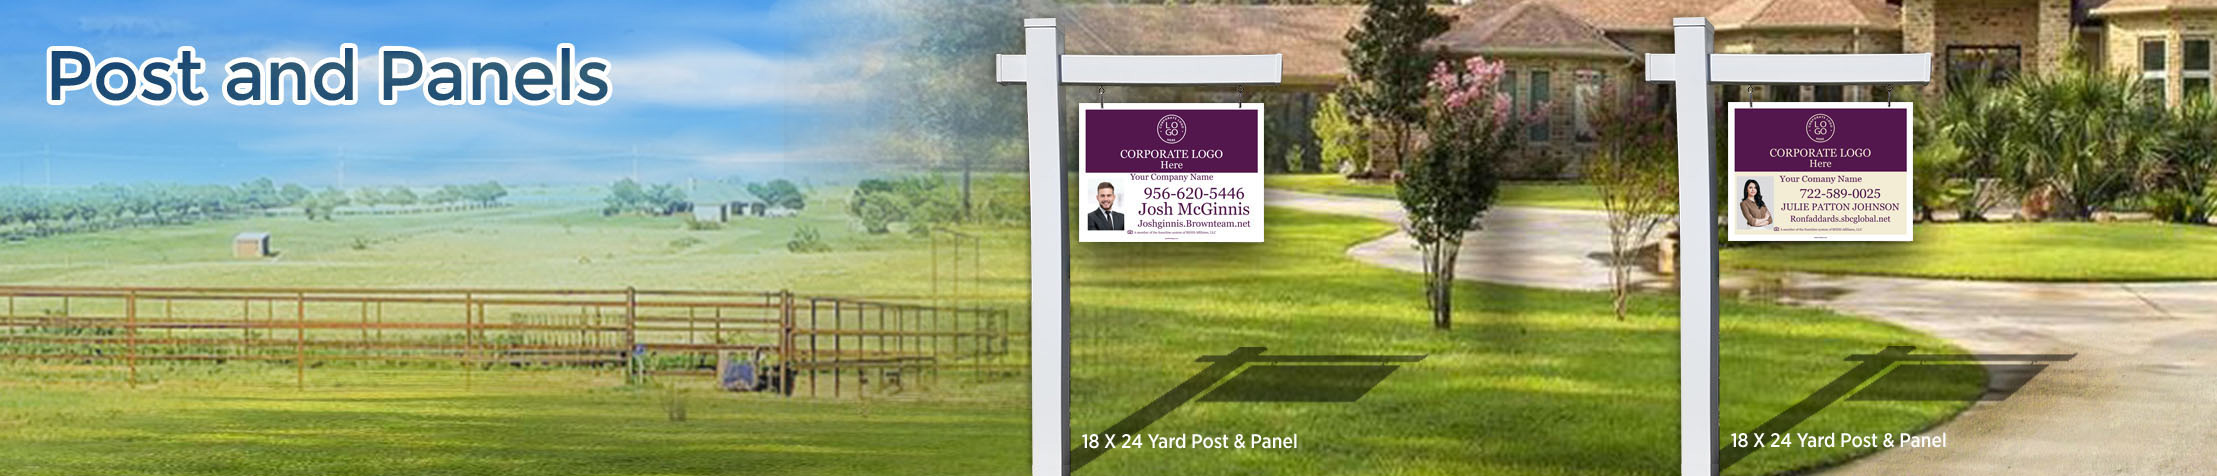 Berkshire Hathaway Real Estate Post and Panel - Berkshire Hathaway  real estate signs | BestPrintBuy.com